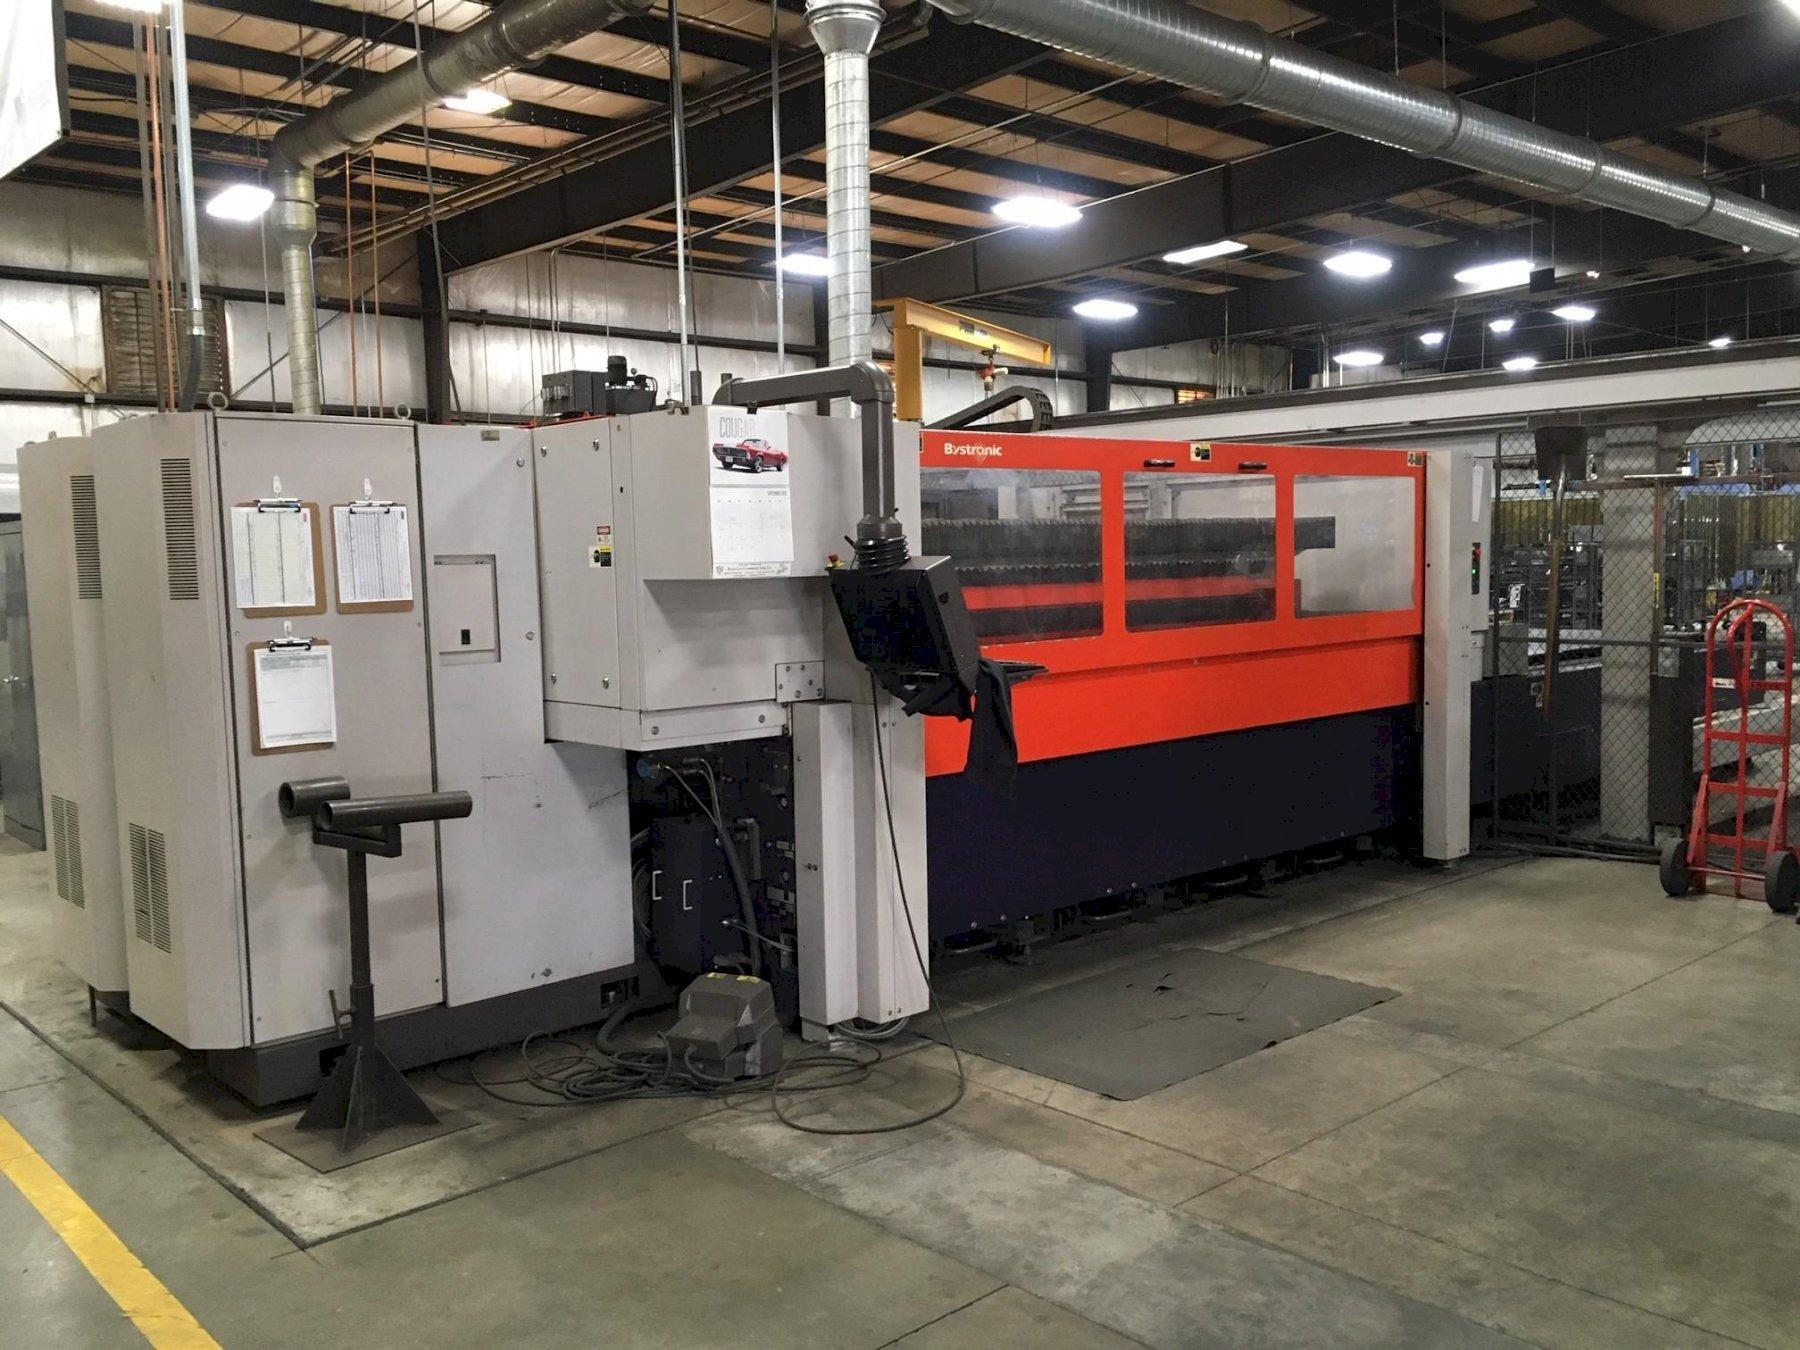 2006 Bystronic Bystar 3015, 5x10, 4400 Watt Co2 CNC Laser